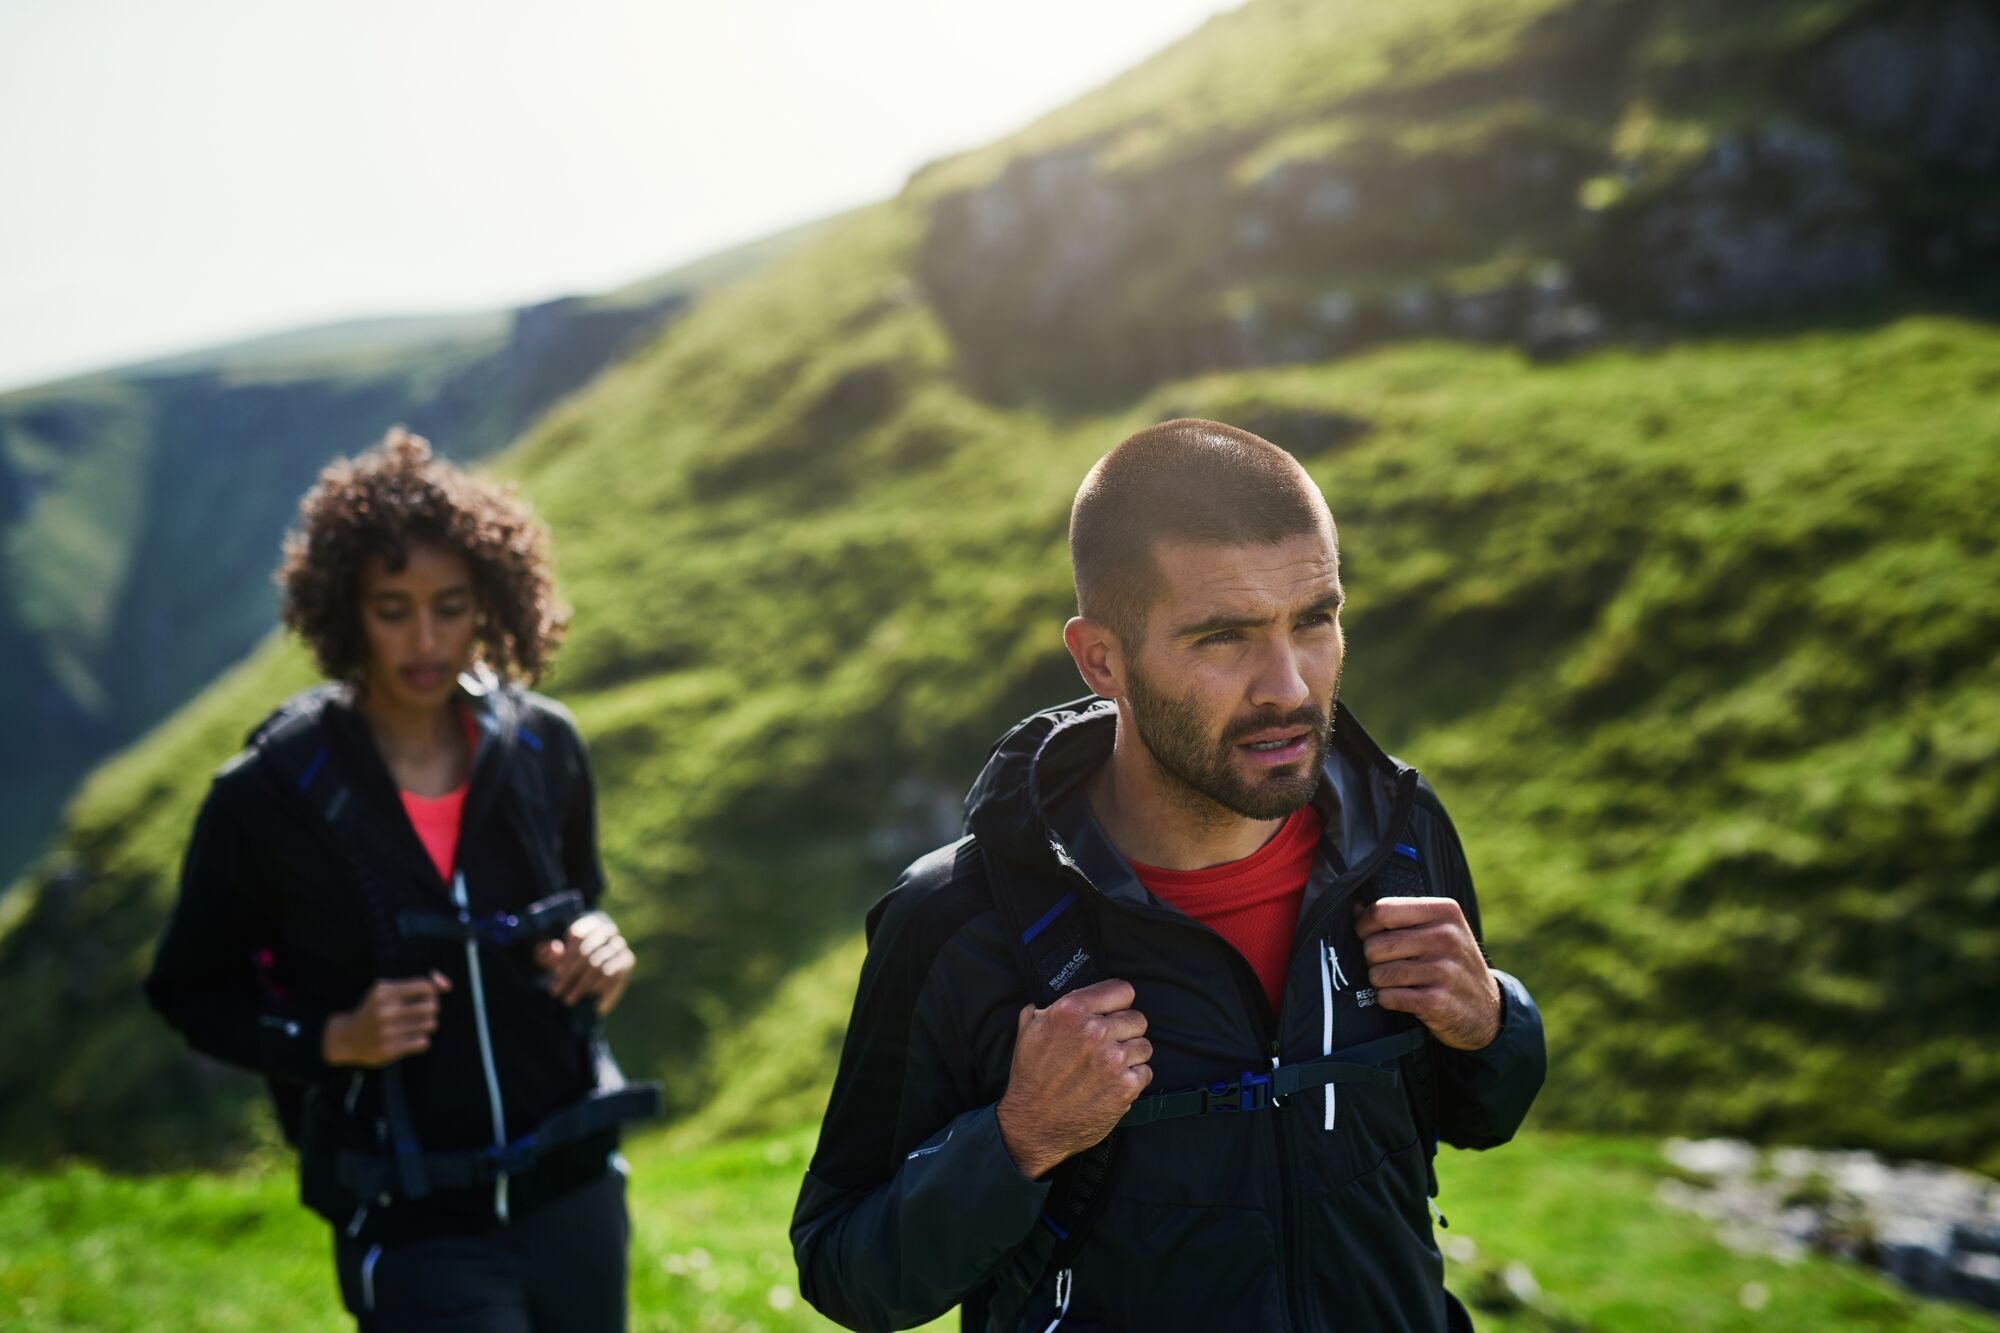 Man and women walking in the hills wearing softshell jackets.